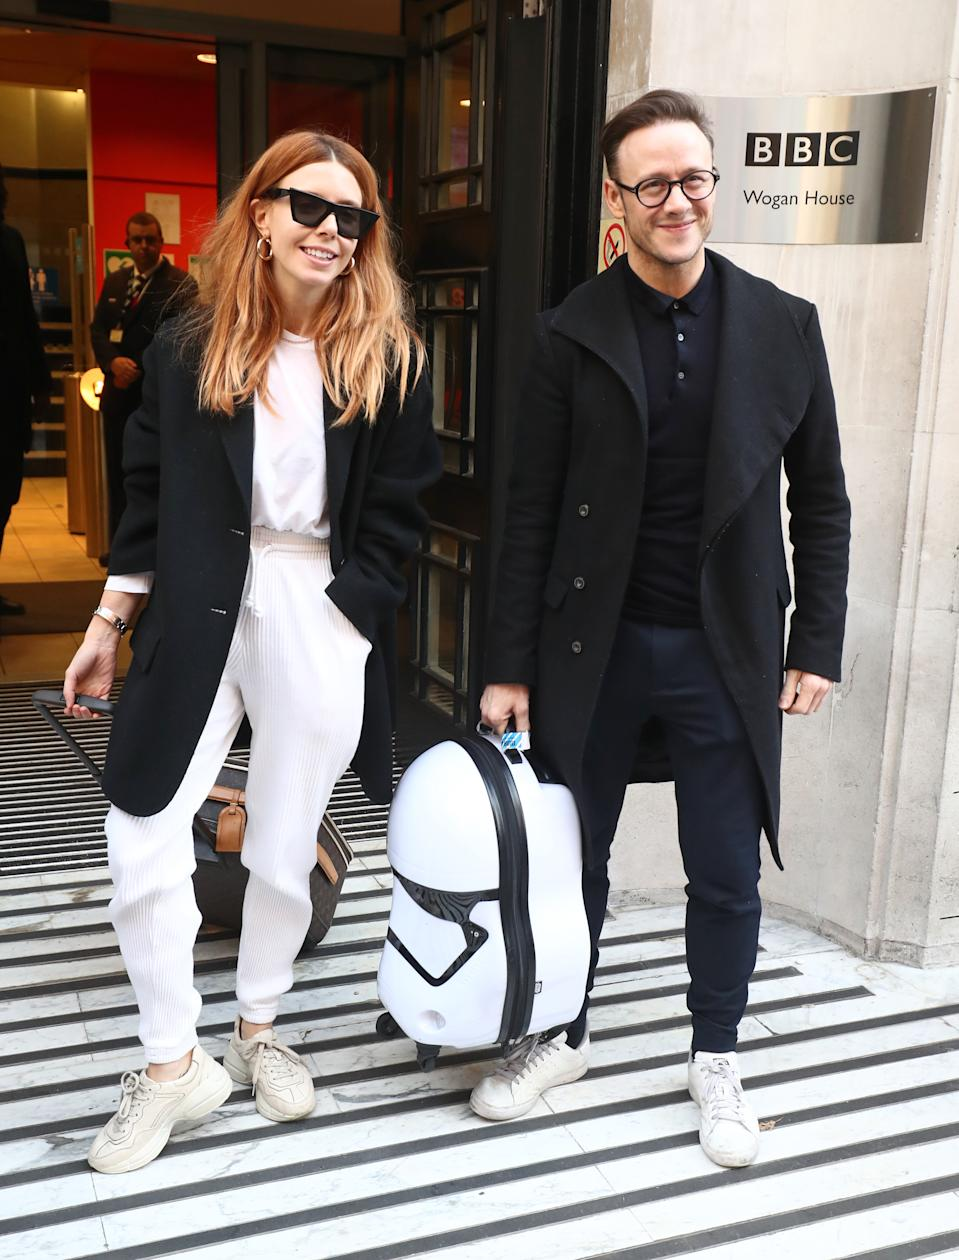 Strictly Come Dancing finalists Stacey Dooley and Kevin Clifton leave BBC Broadcasting House in London after appearing on the Chris Evans radio show. (Photo by Gareth Fuller/PA Images via Getty Images)